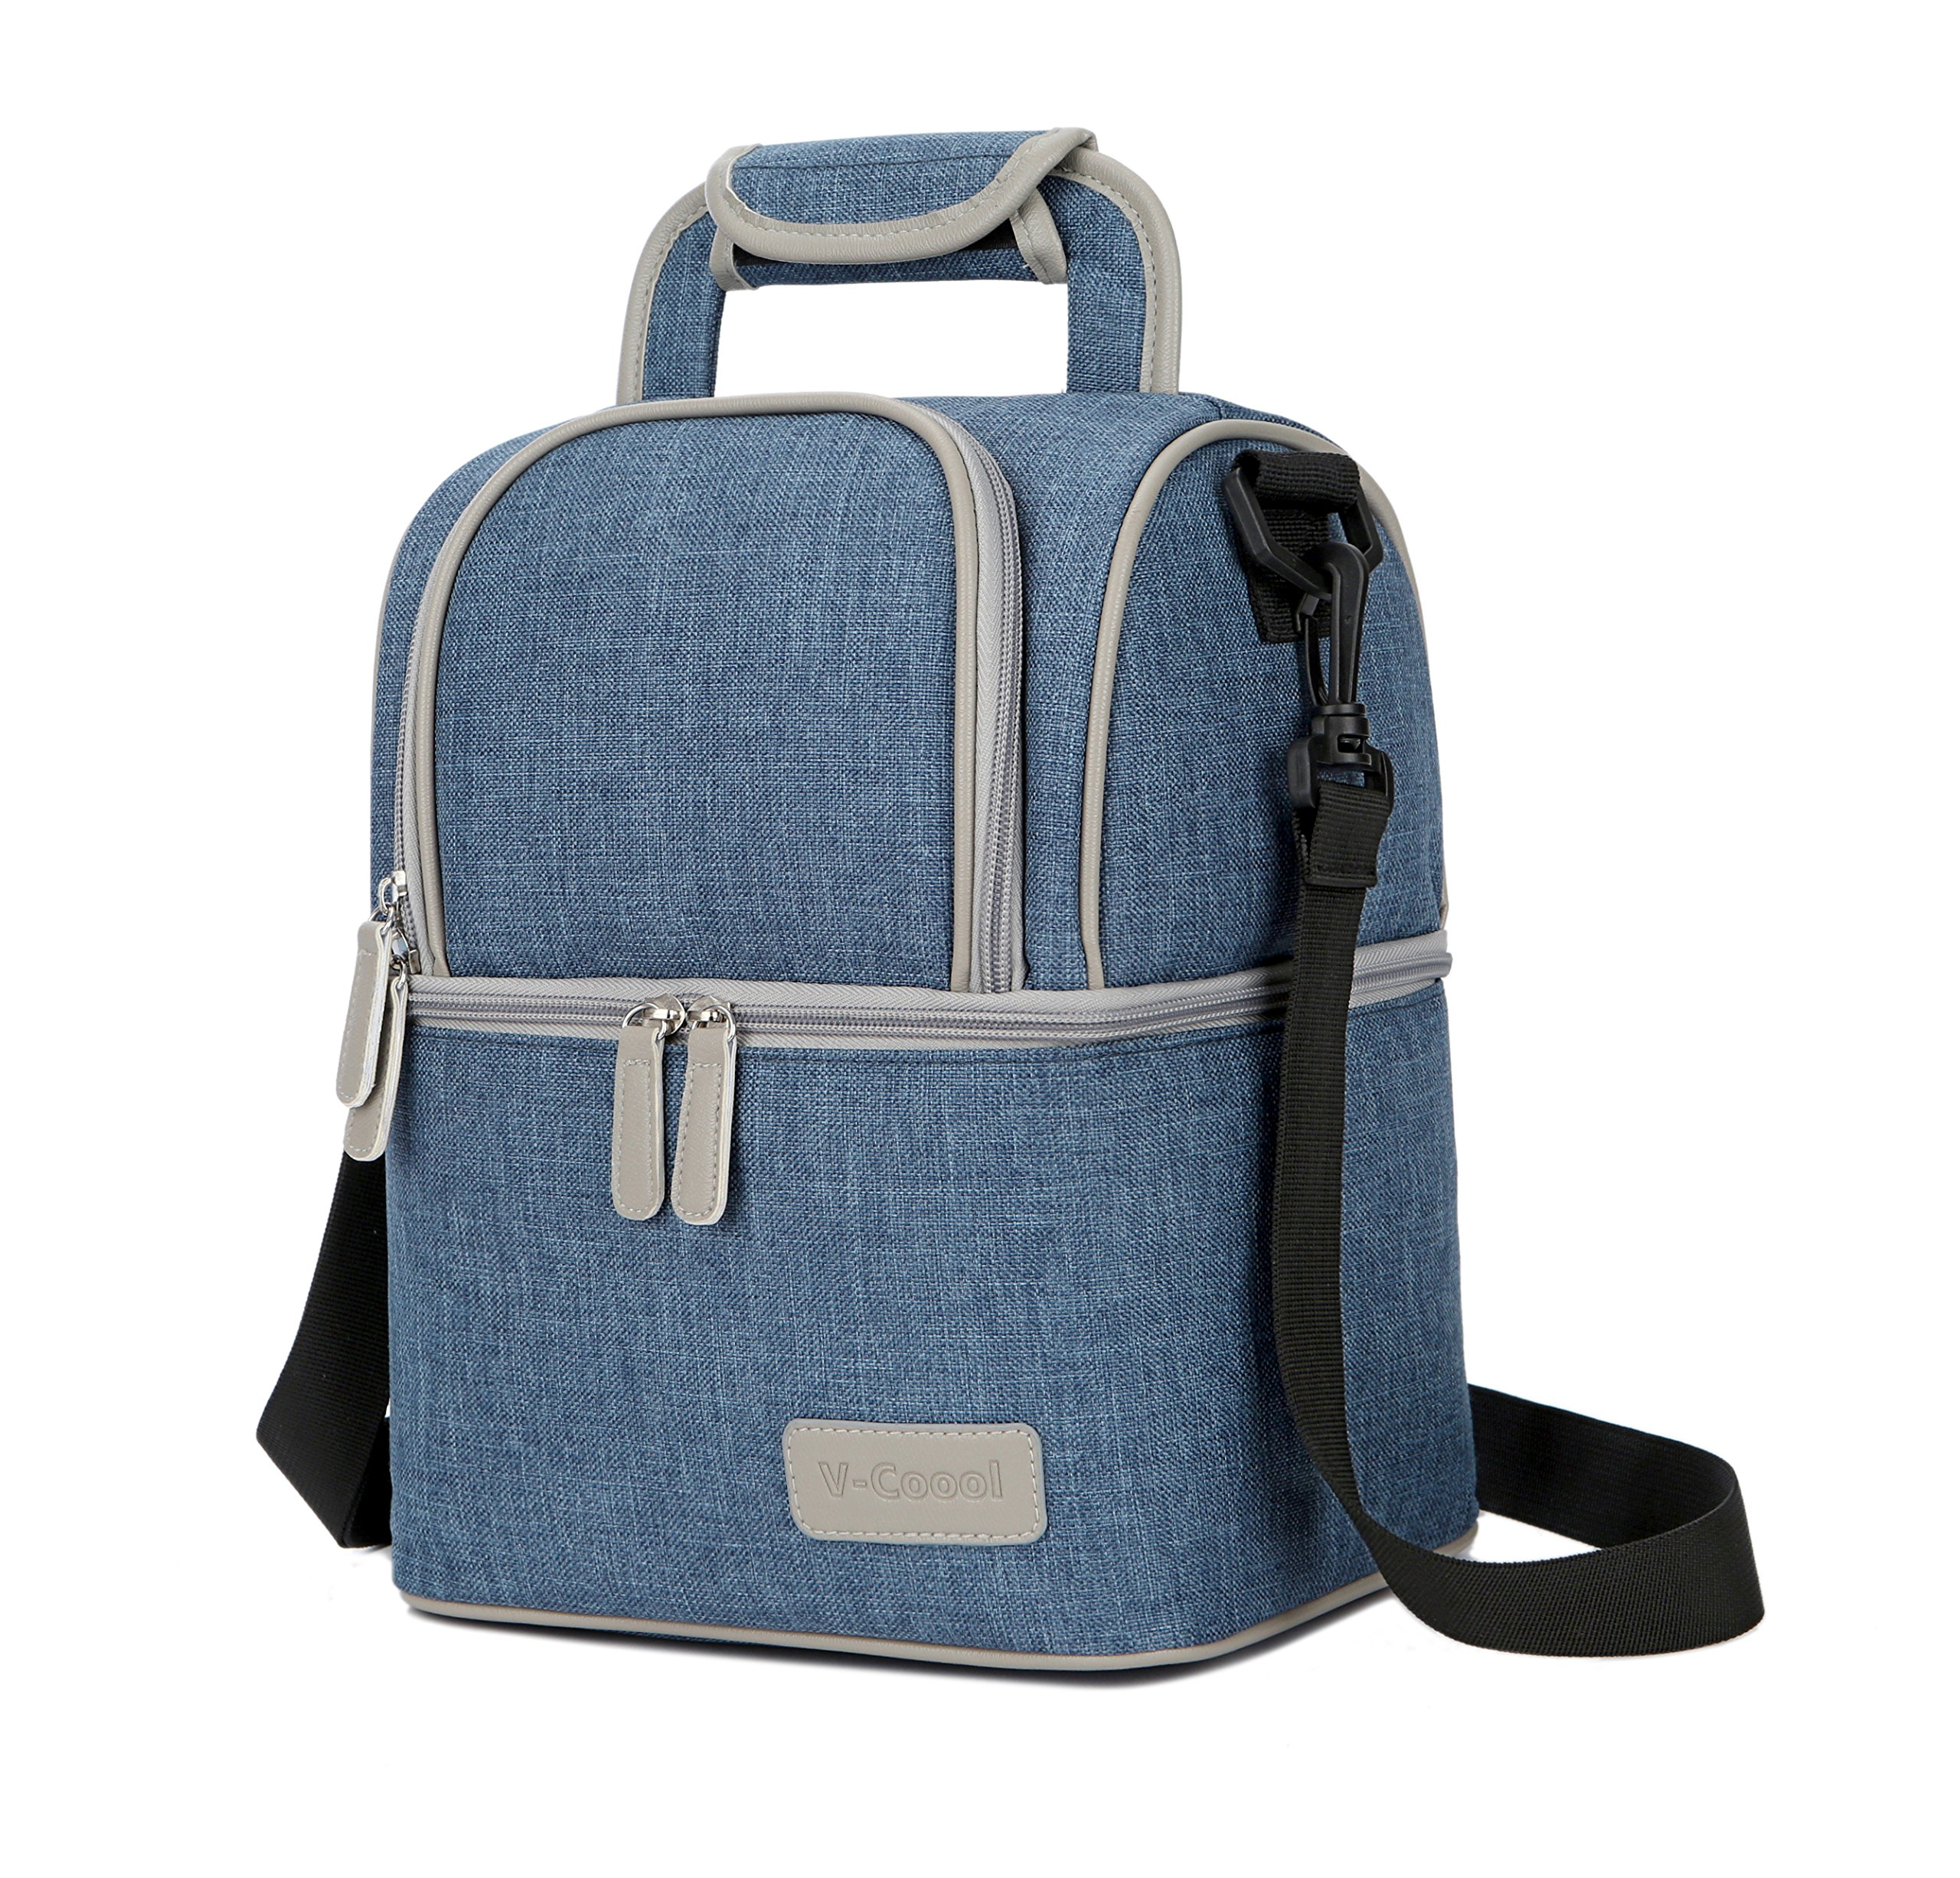 Lunch Bag, Portable Cooler Bag Insulated Thermal Lunch Box with Shoulder Strap Baby Milk Backpack Blue